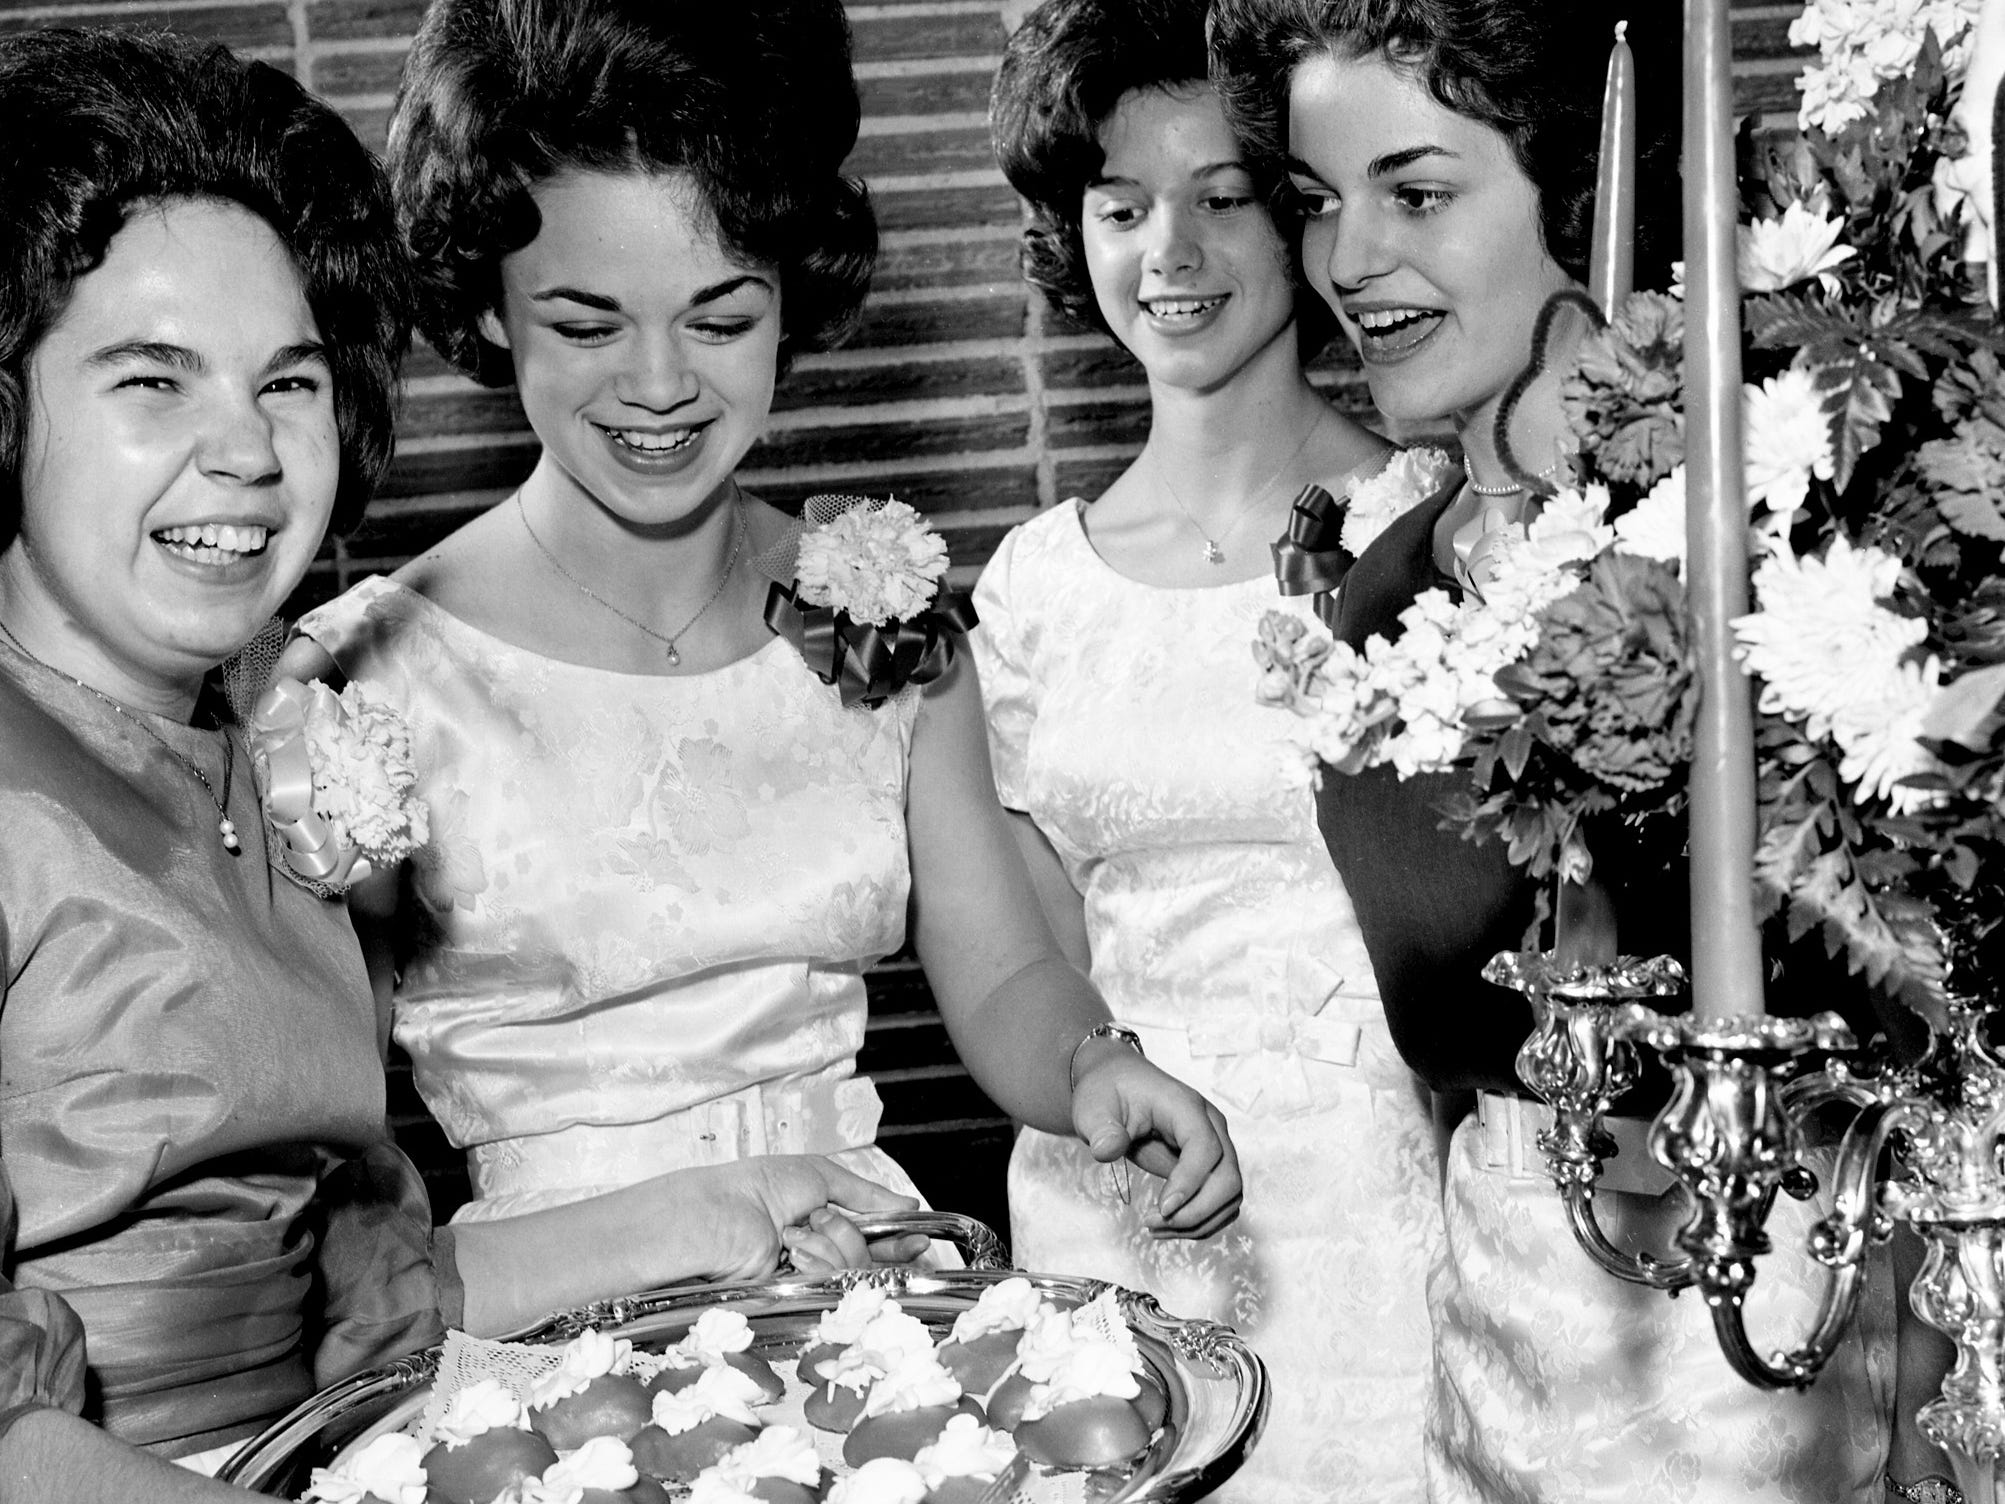 Donnaveene Mayo, left, serving cakes, and Helen Gower, right, entertained at a Valentine punch party at Mayo's home on Granny White Pike Feb. 9, 1963. Shirley Smith, second from left, and Shirley Griggs are guests.